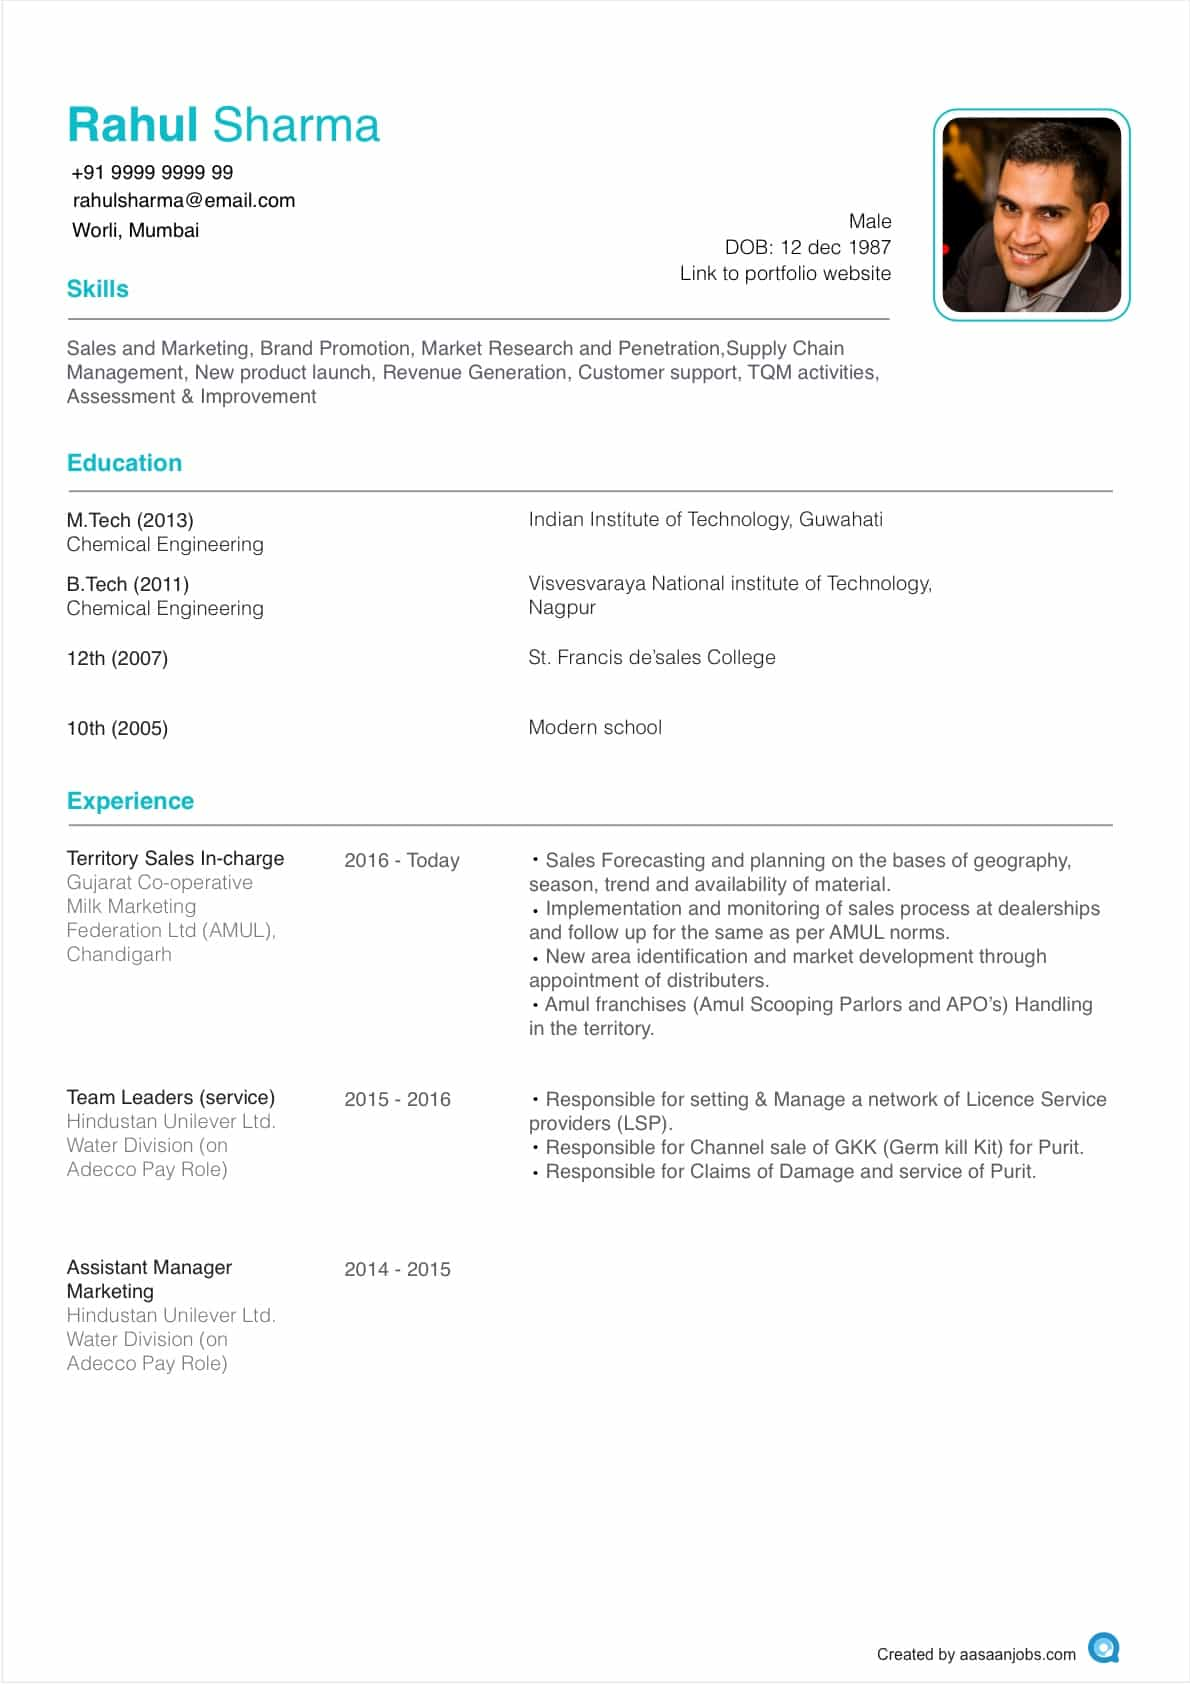 Resume Format | CV Format | Resume Sample at Aasaanjobs